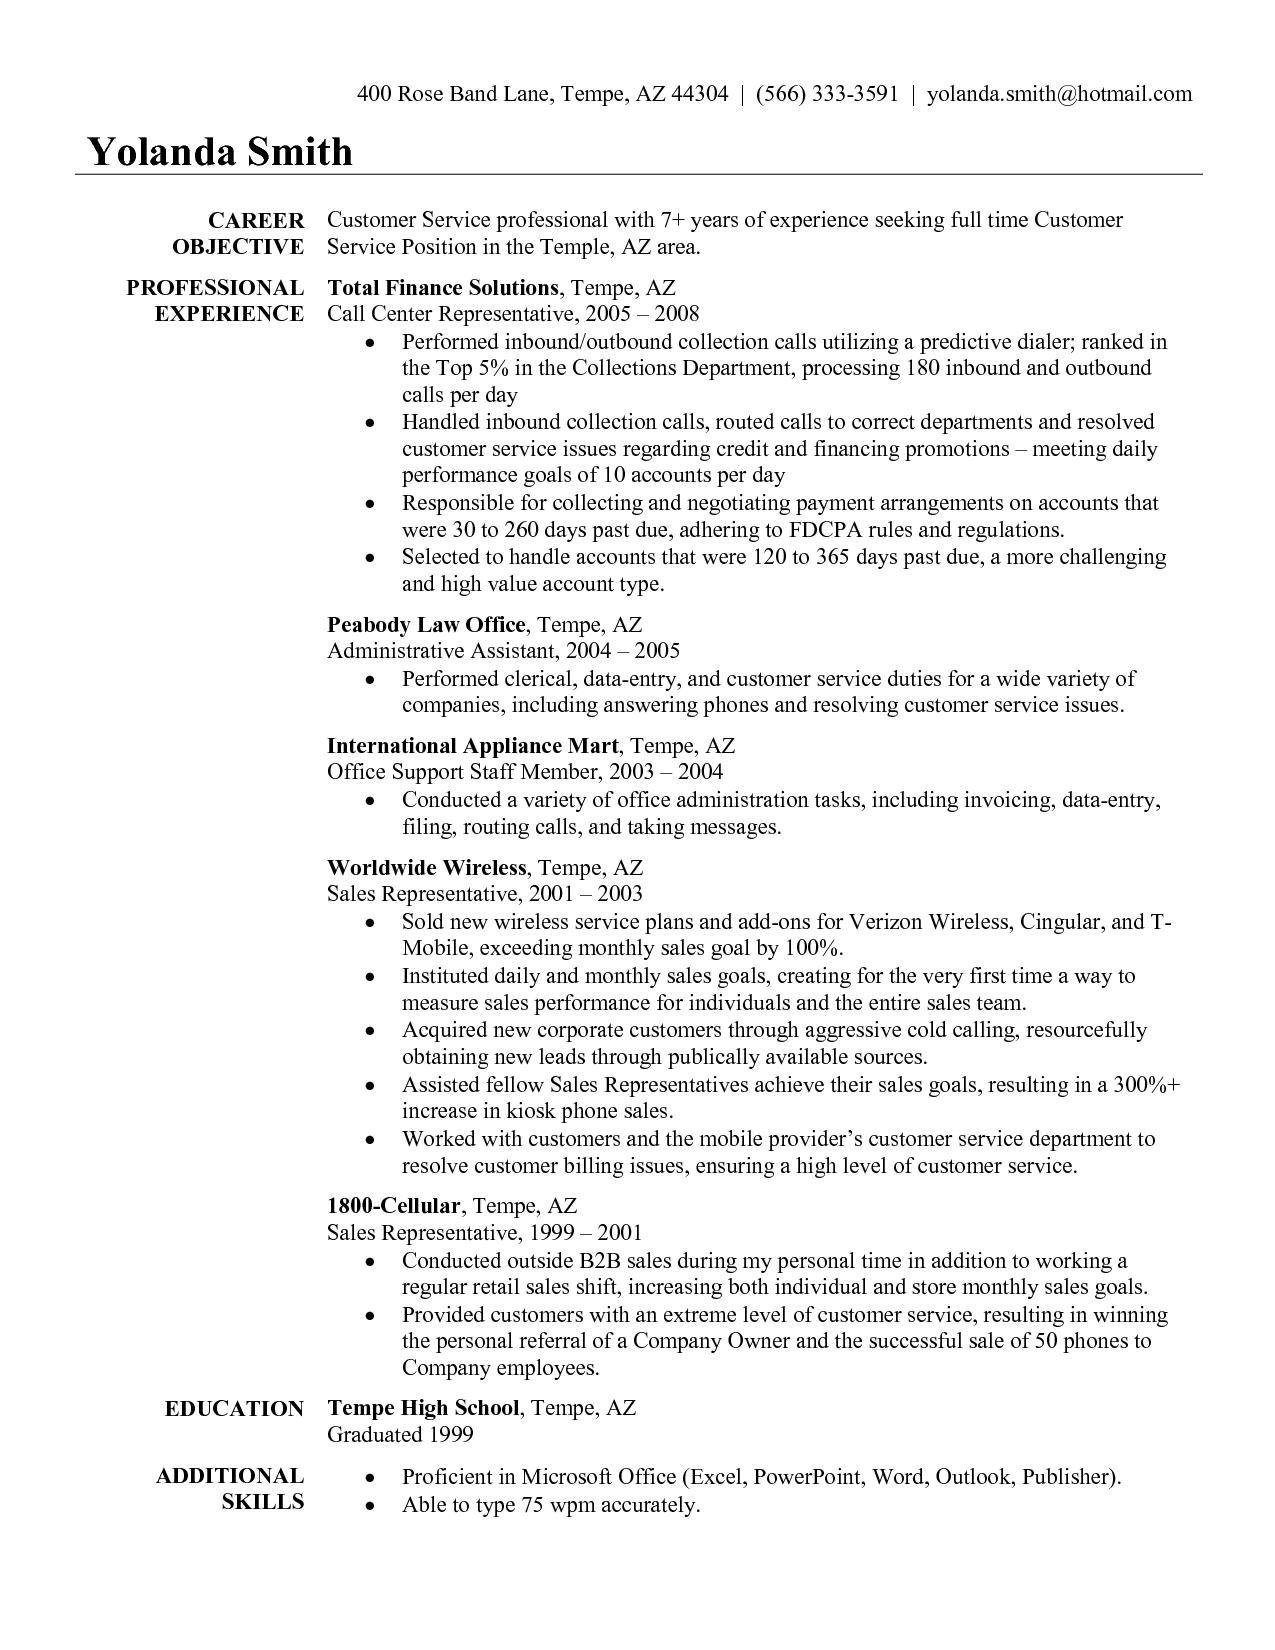 Resume Resume Examples For A Customer Service Job traffic customer resume examplescustomer service examples examples